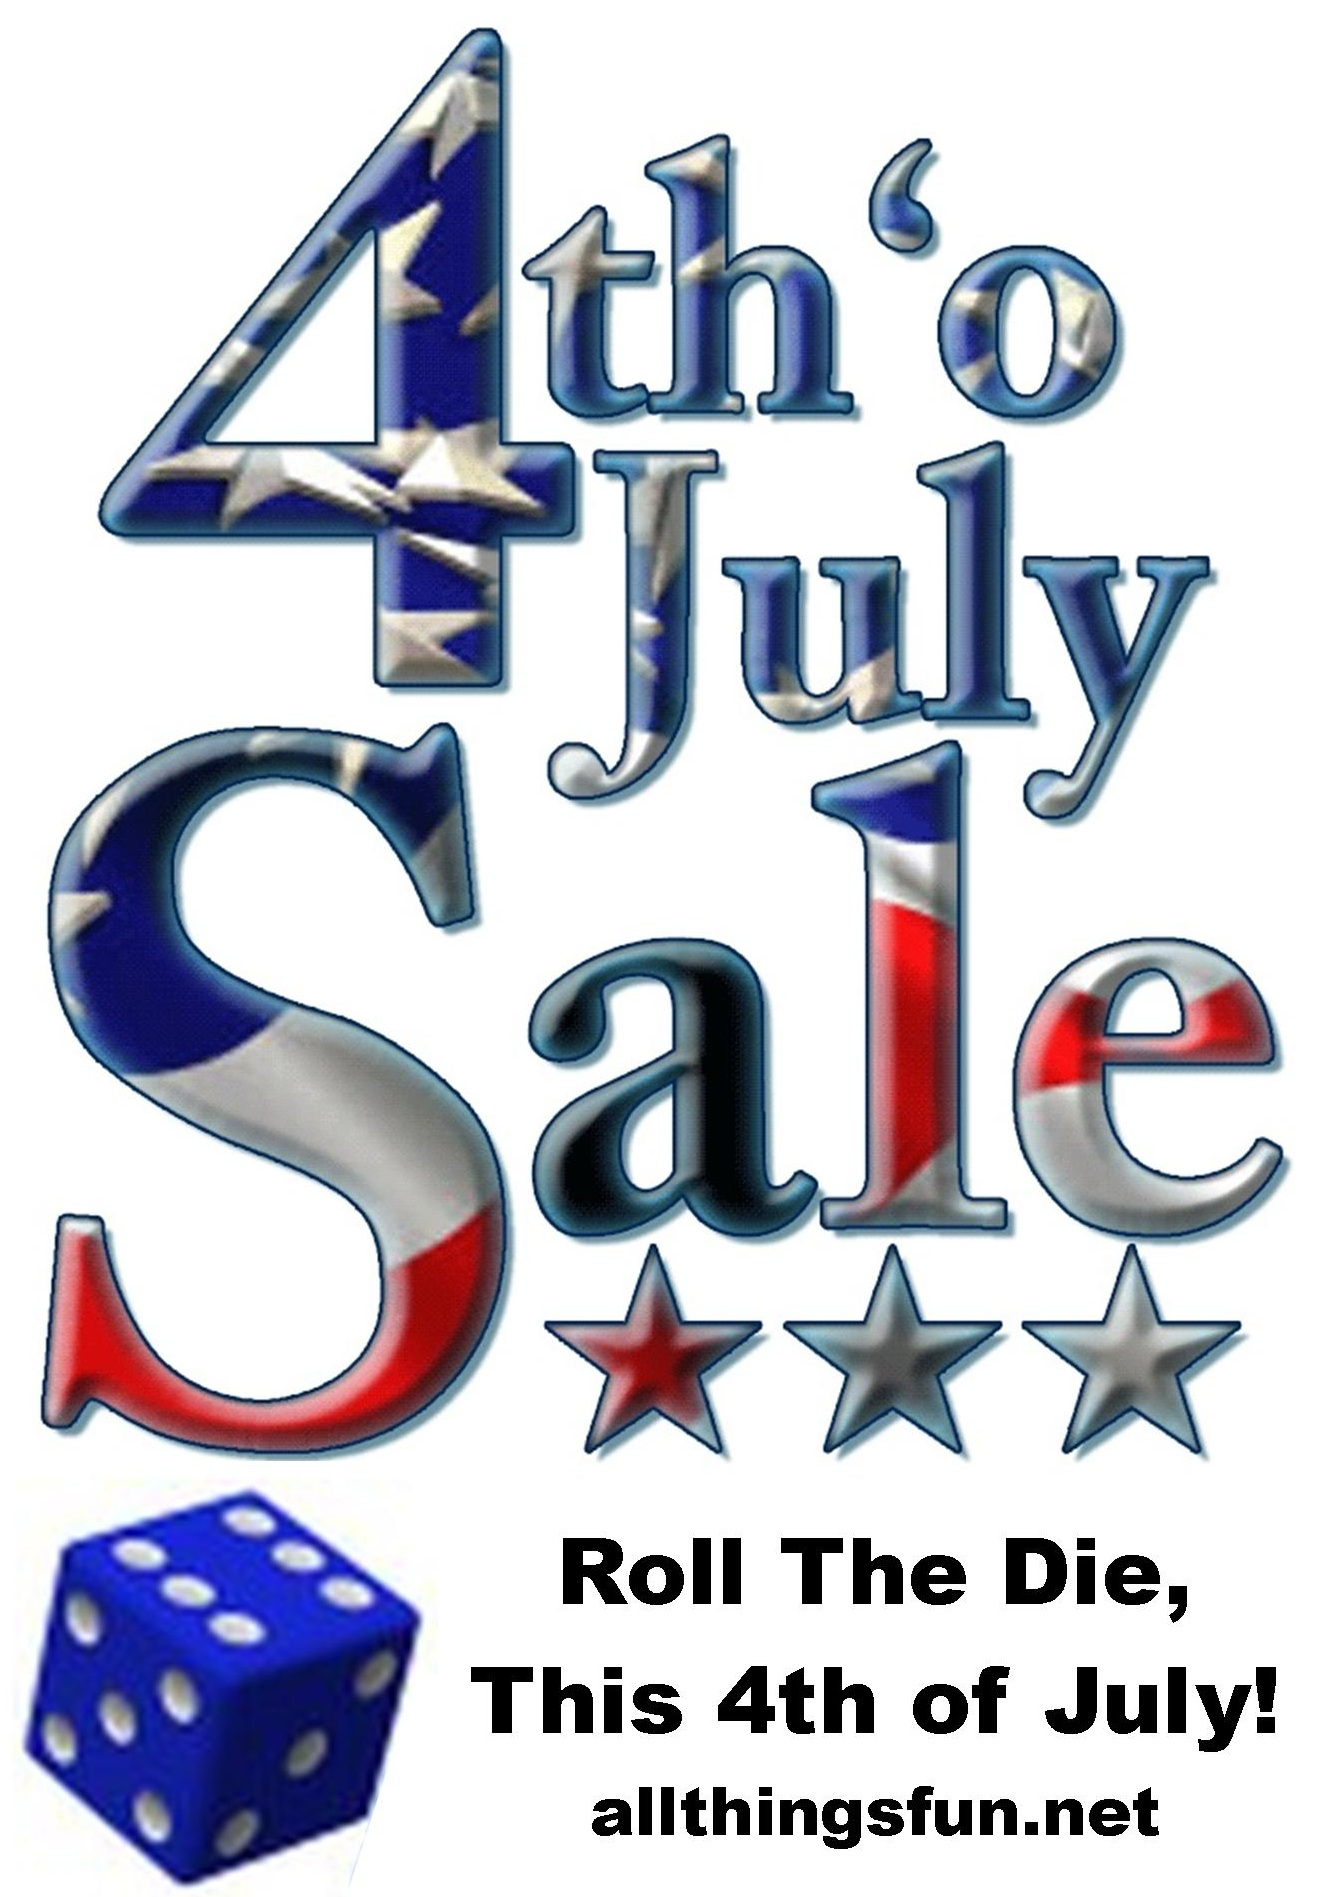 Roll The Die 4th of July Sale @ All Things Fun! | Berlin Township | New Jersey | United States